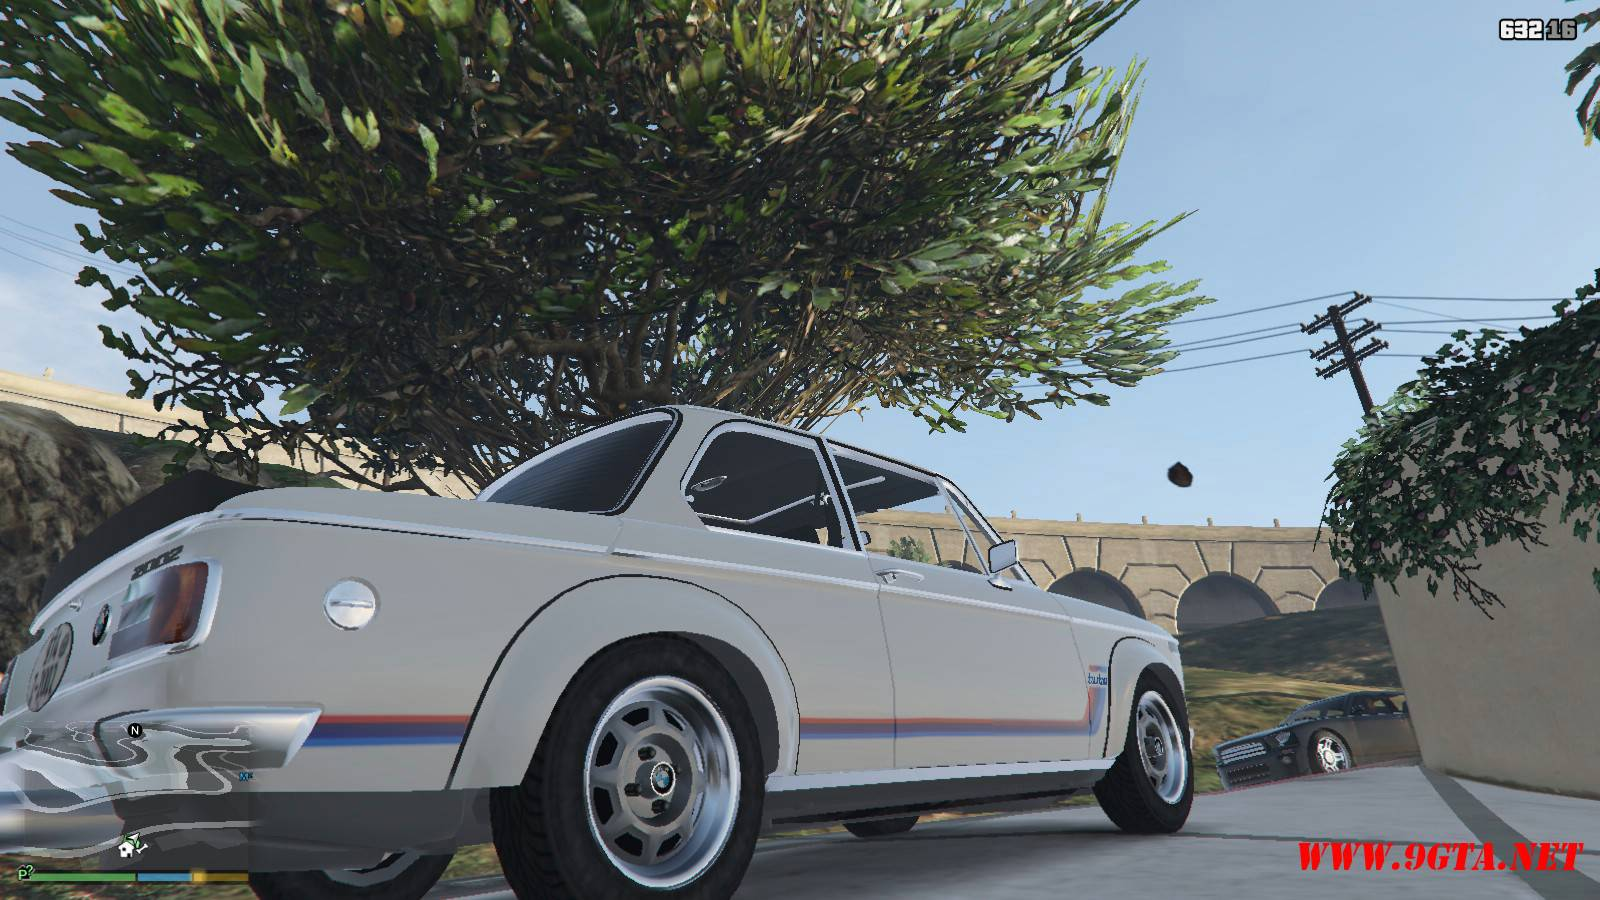 2002 BMW Turbo Mod For GTA5 (7)